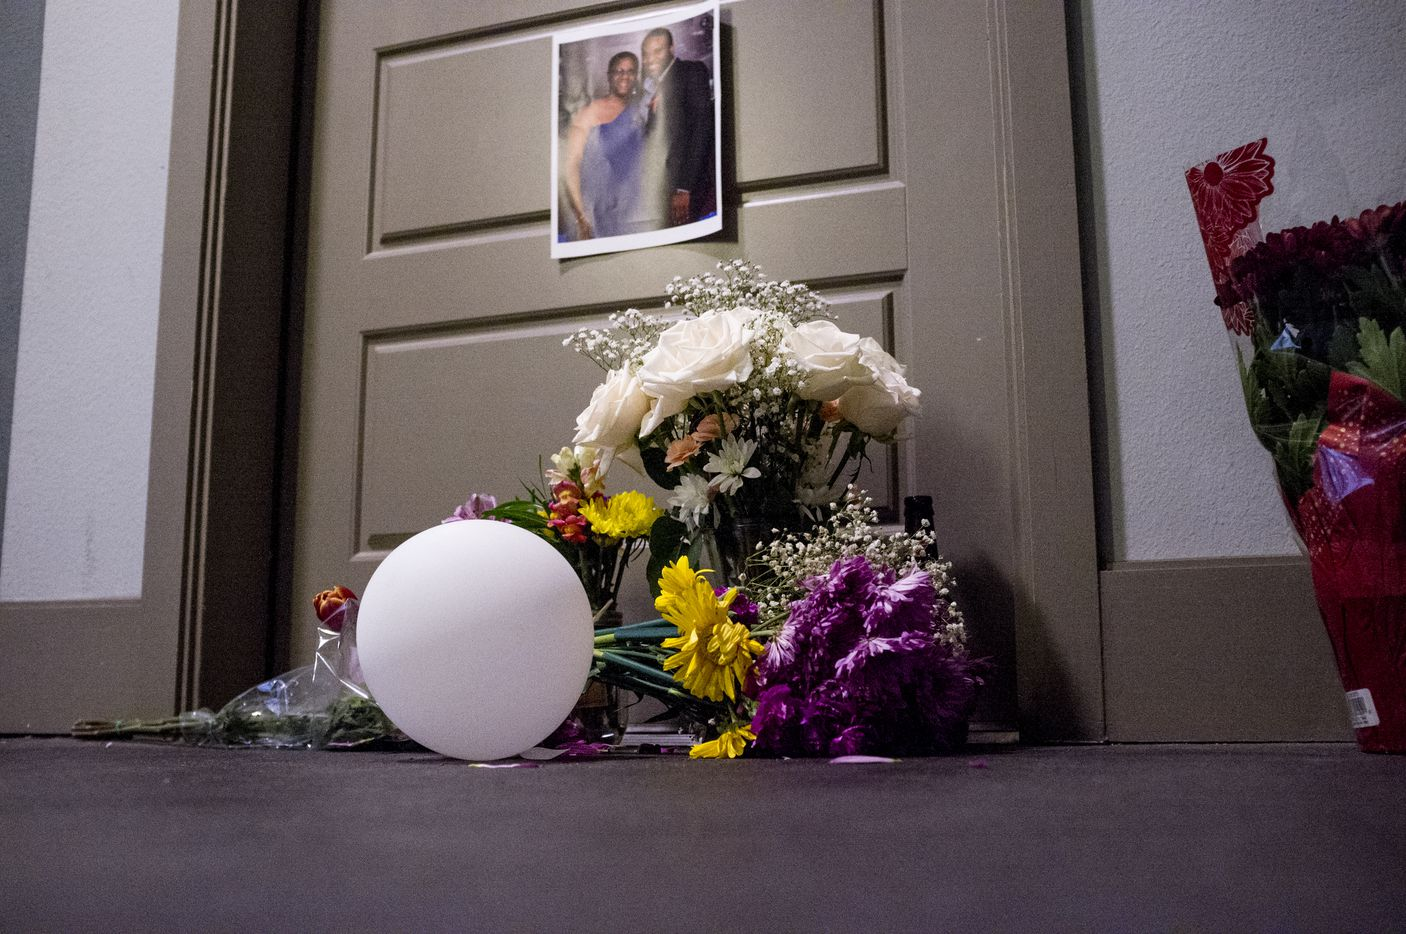 Flowers are placed at the front door apartment of Botham Jean on Monday, Sept. 10, 2018 in Dallas. Jean was shot Thursday by off-duty Dallas police officer Amber Guyger, who says she mistook his apartment for hers.